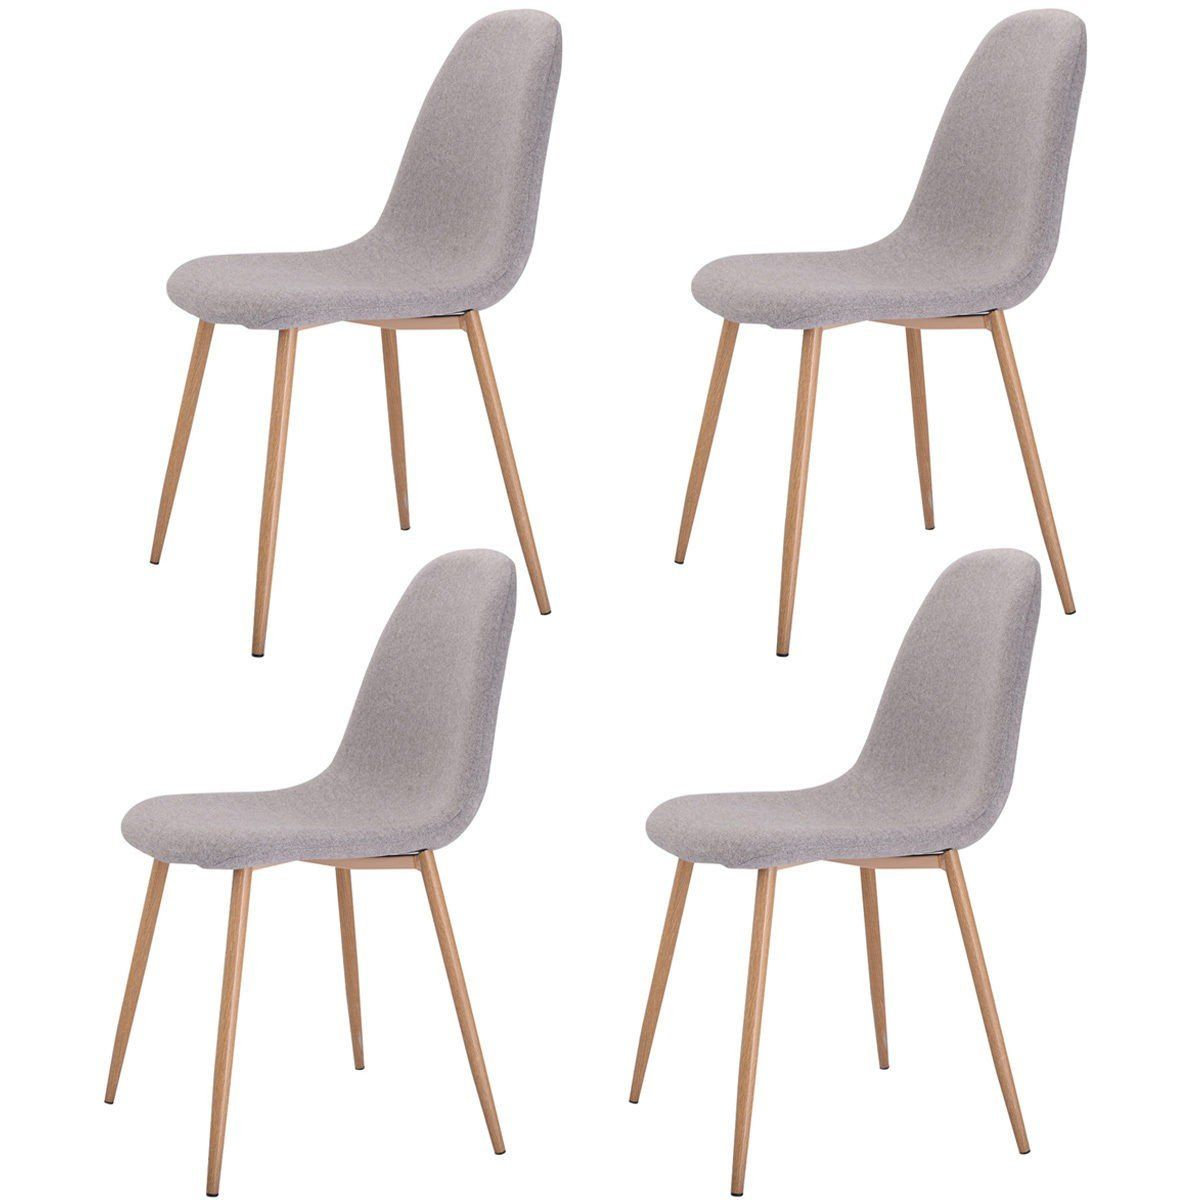 Can I Use An Accent Chair For A Dining Chair: Set Of 4 Gray Accent Dining Chairs